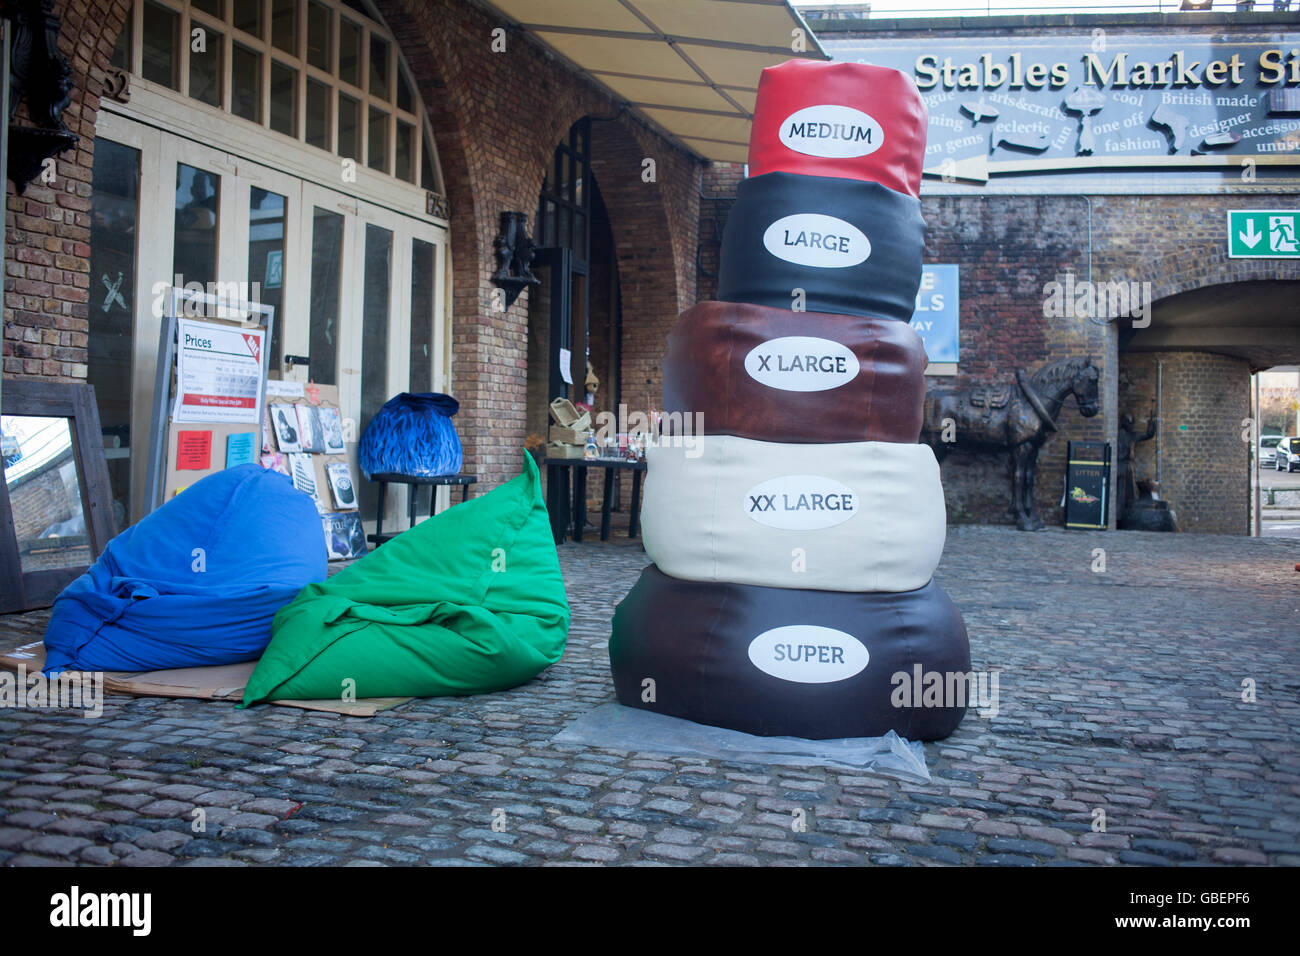 Stack of bean bags for sale in The Stables Market, Camden - Stock Image